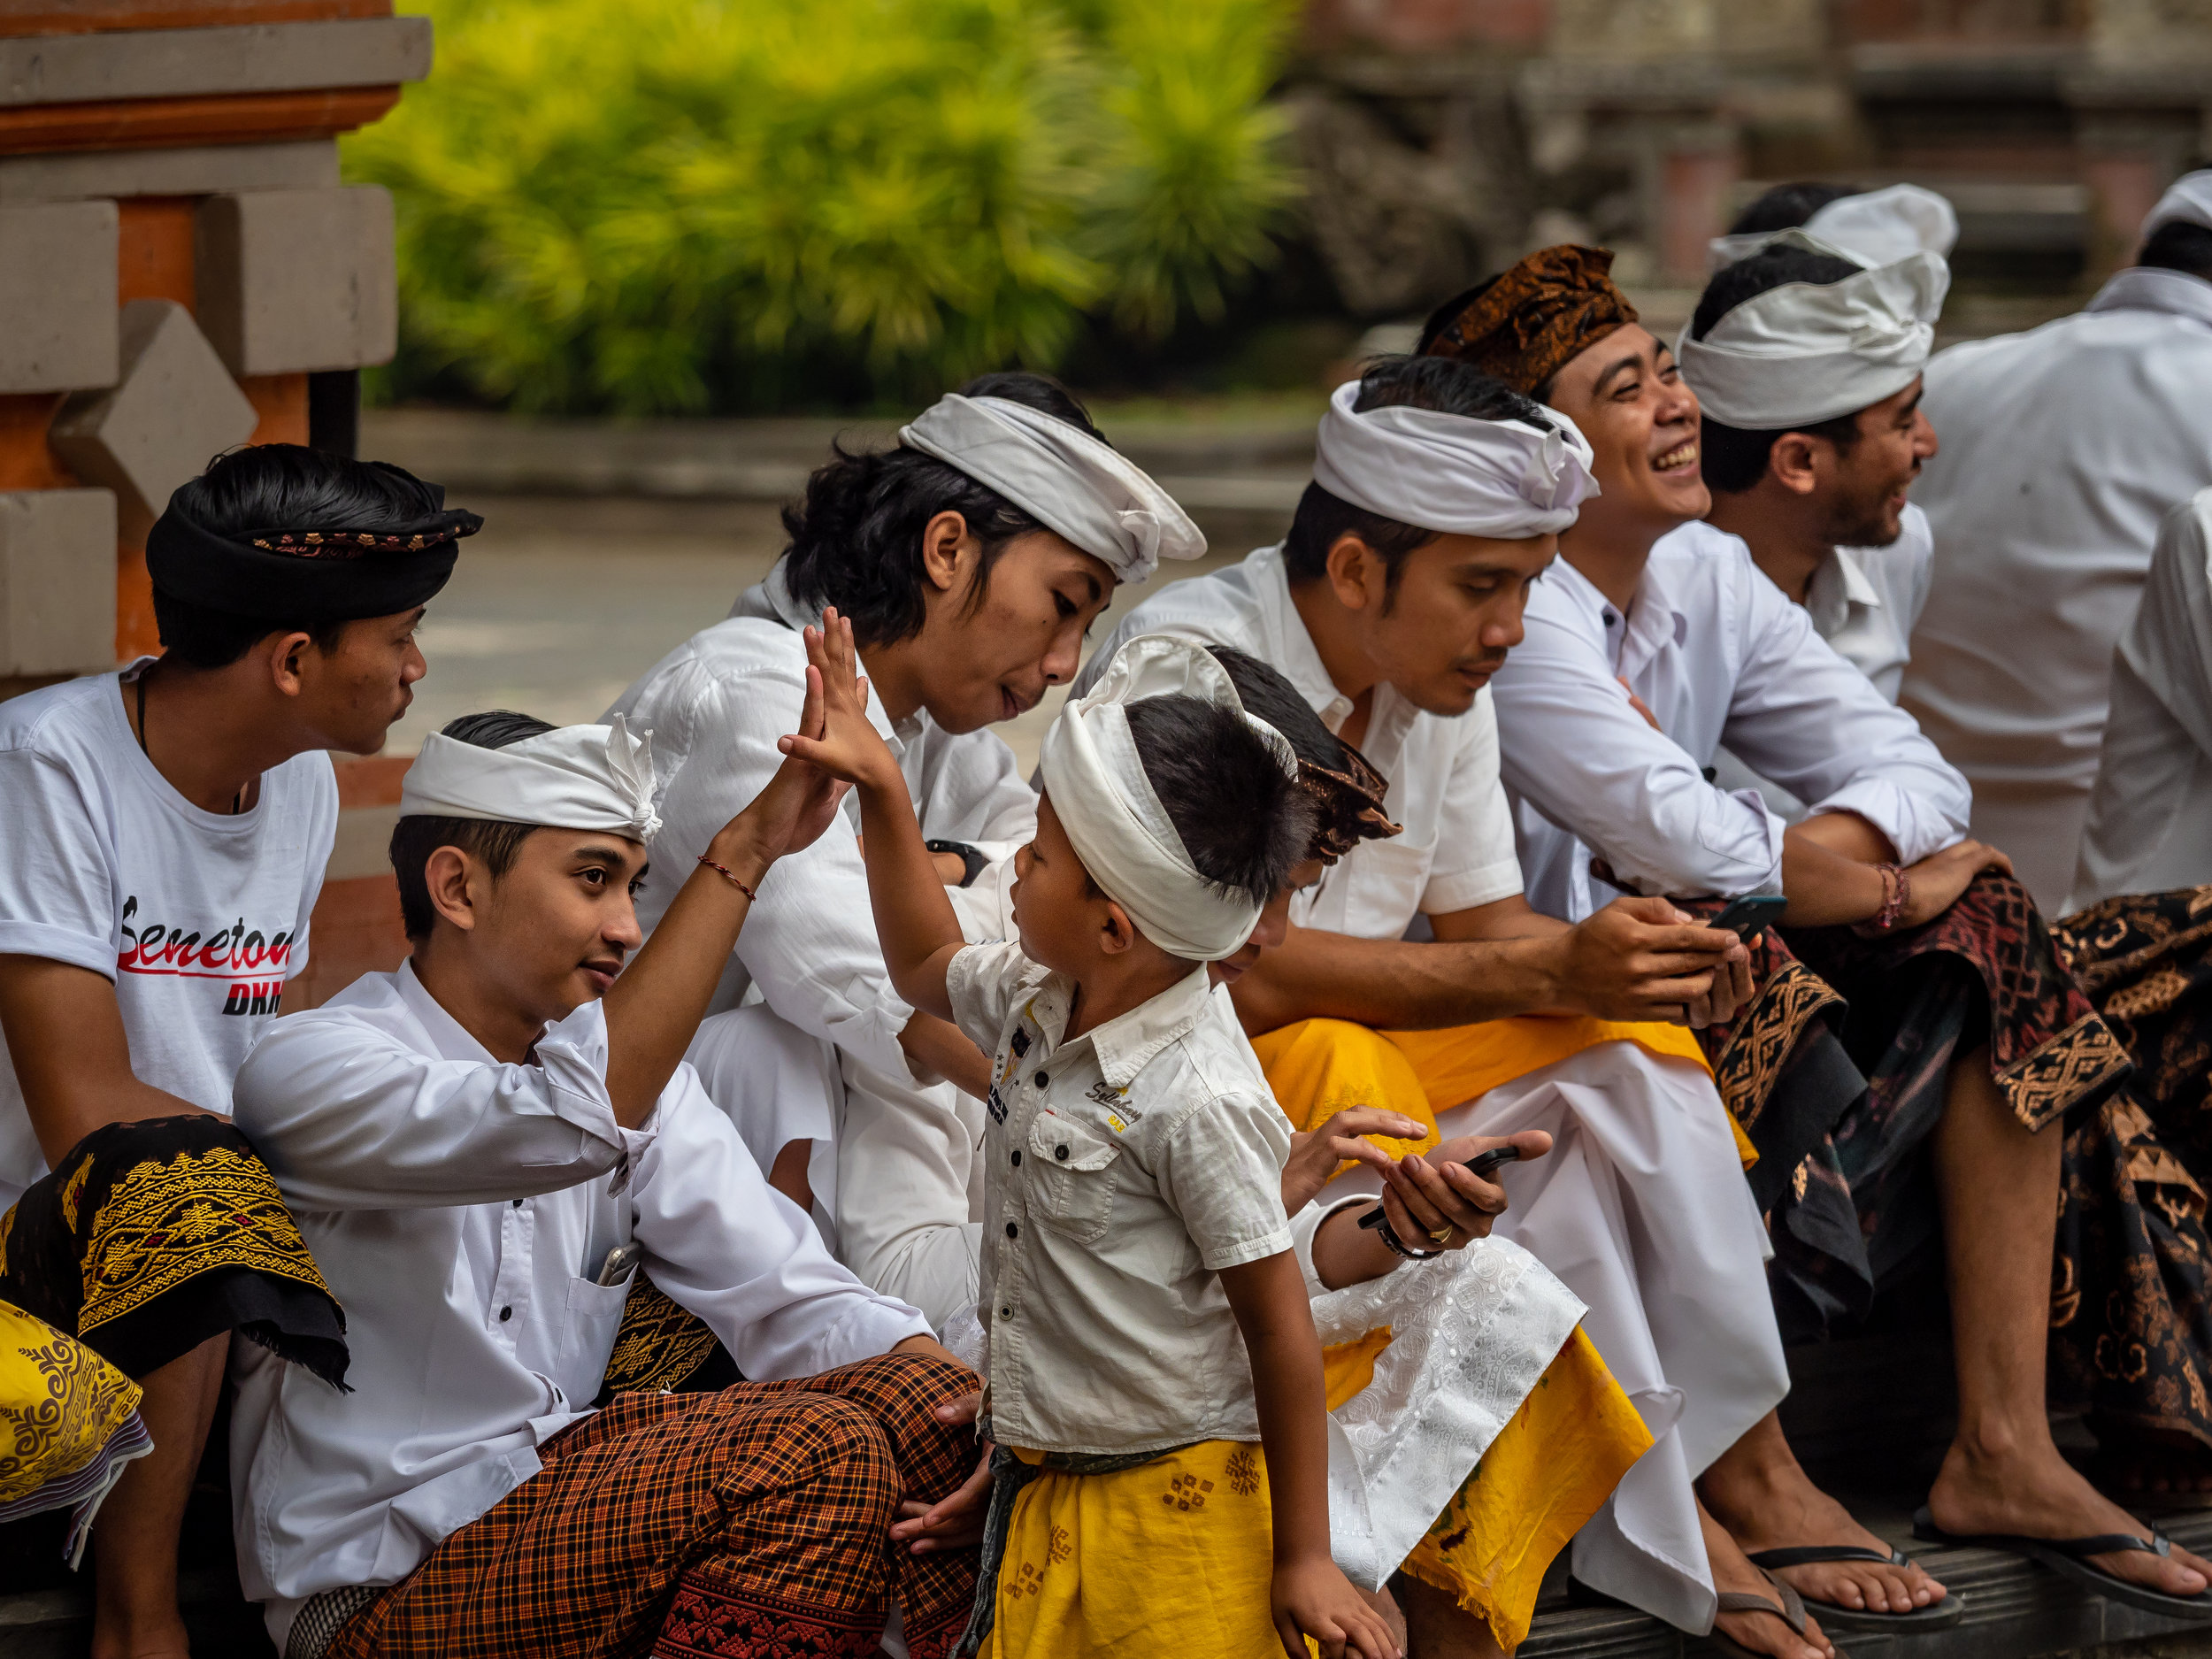 Seth T. Buckley Photojournalism - Balinese Road Less Traveled - Ubud Bali Indonesia Photography